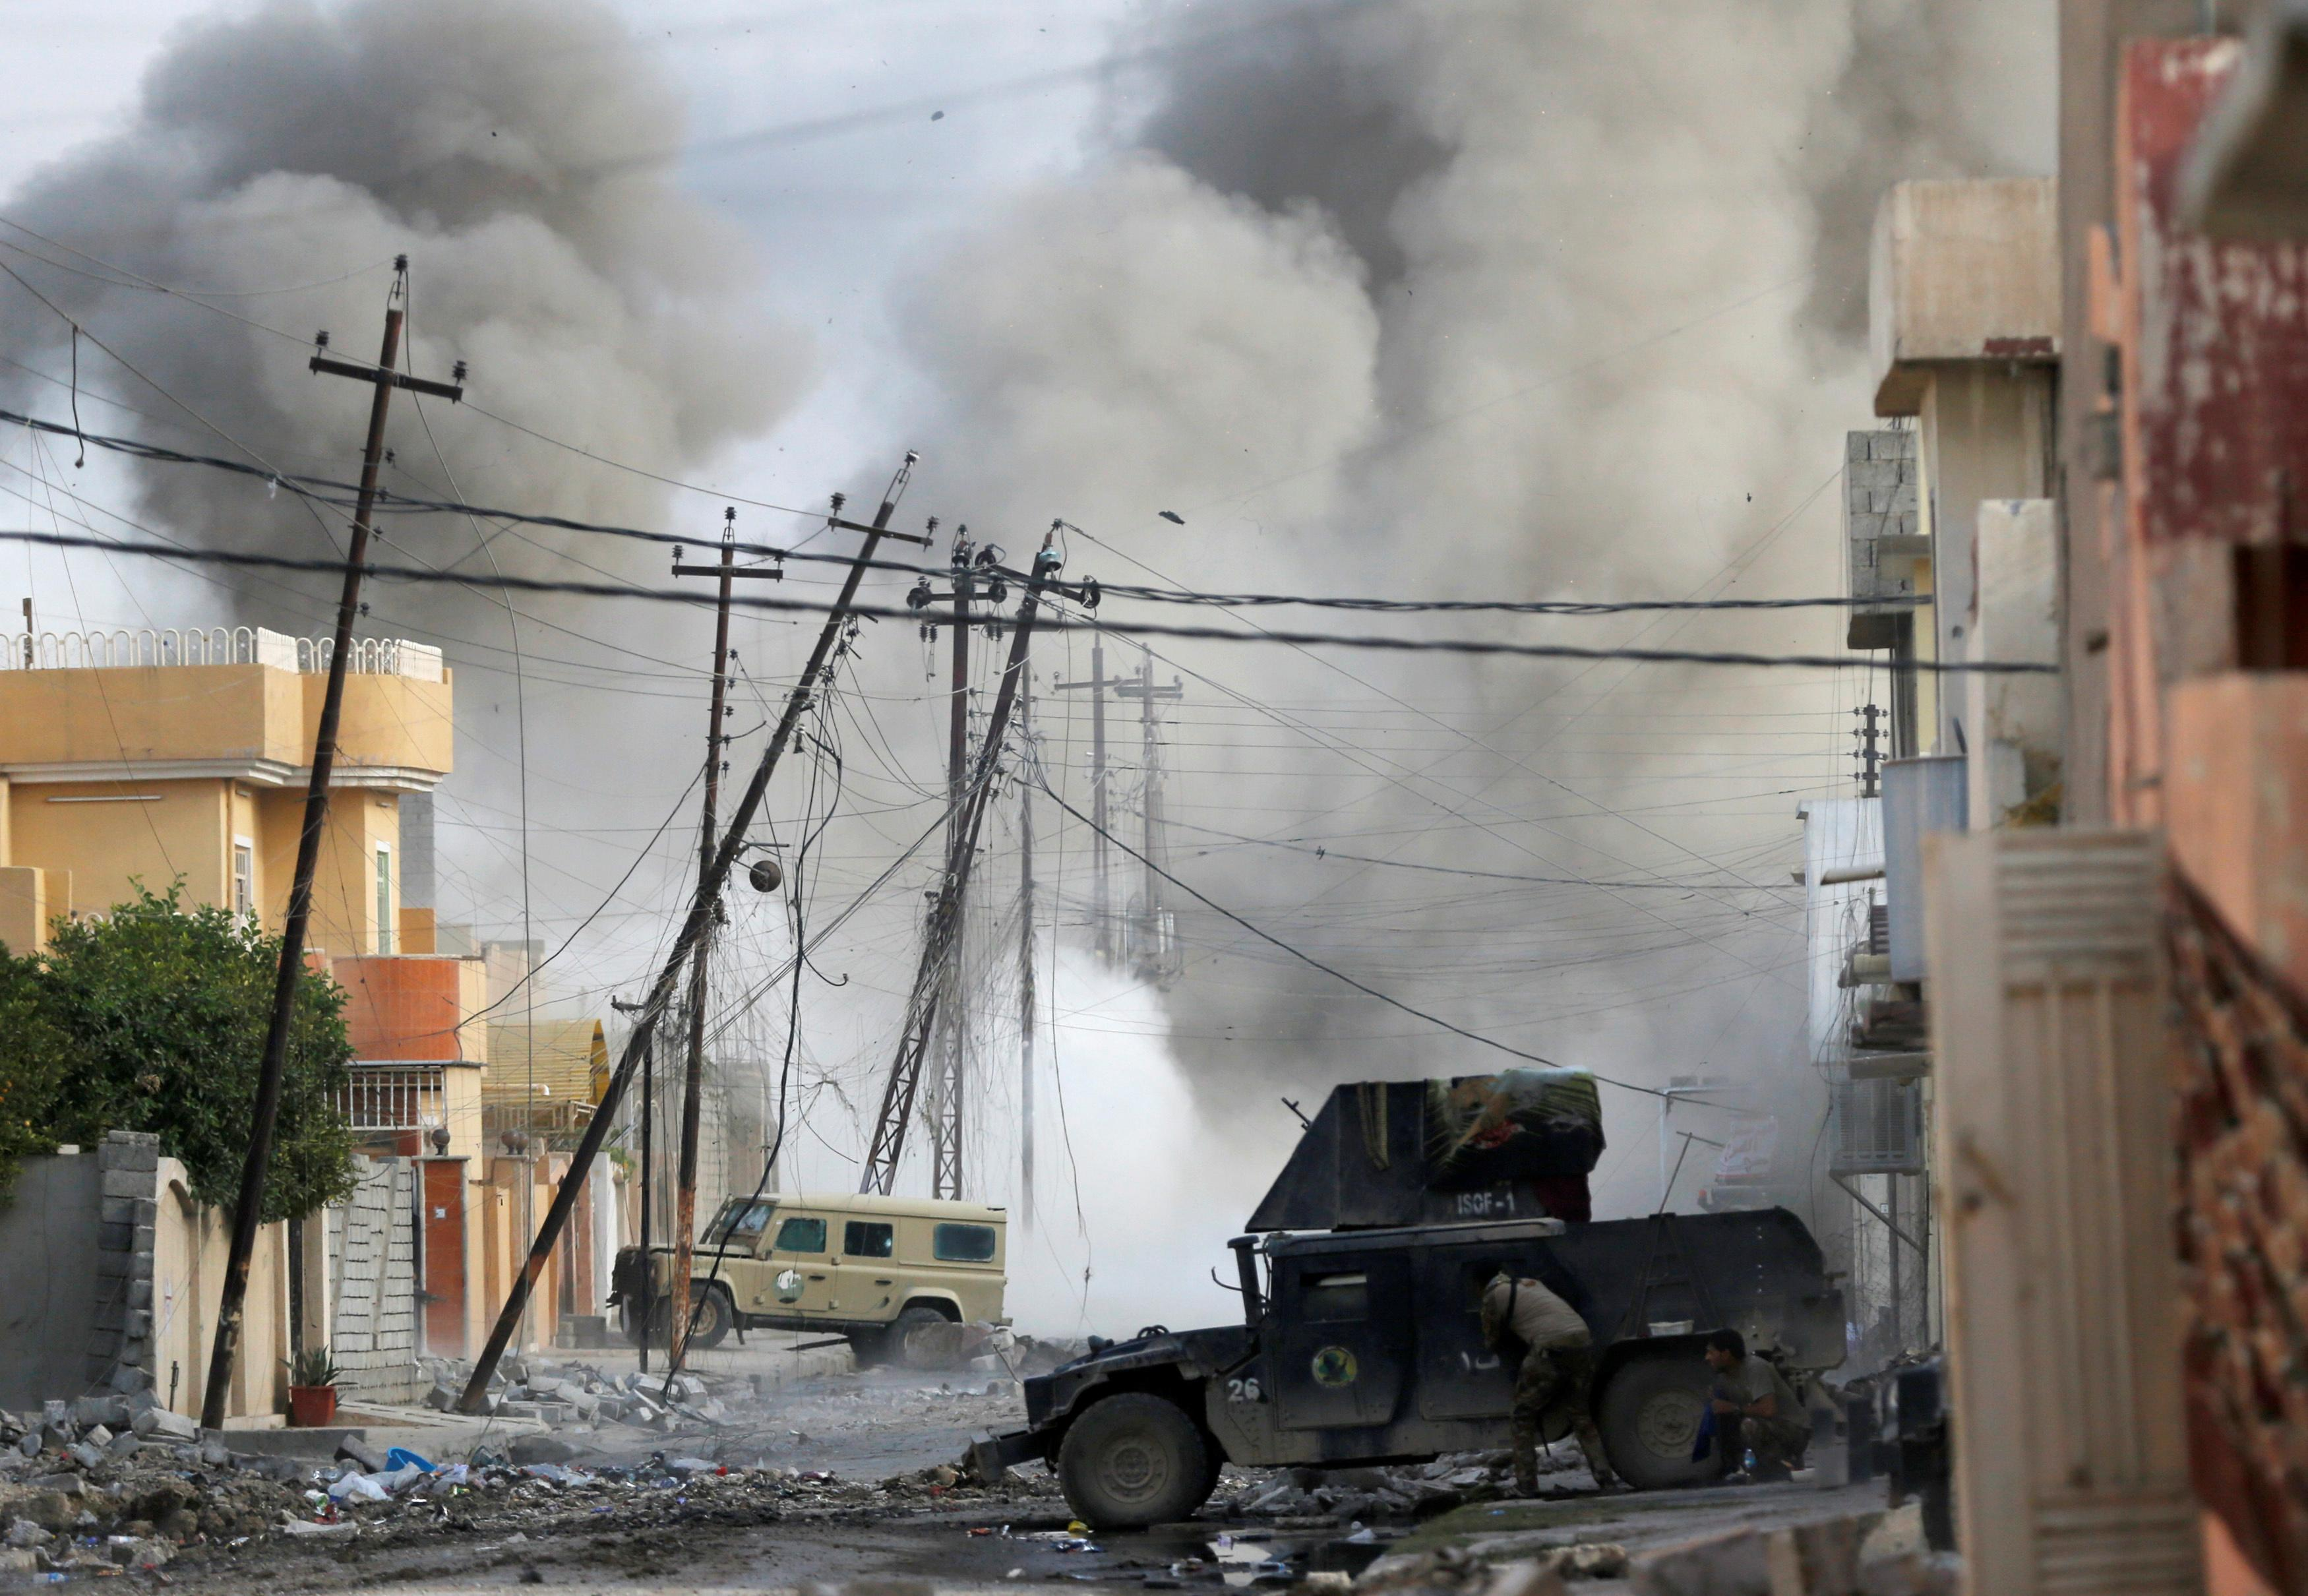 Iraqi troops expand foothold in Mosul as Islamic State